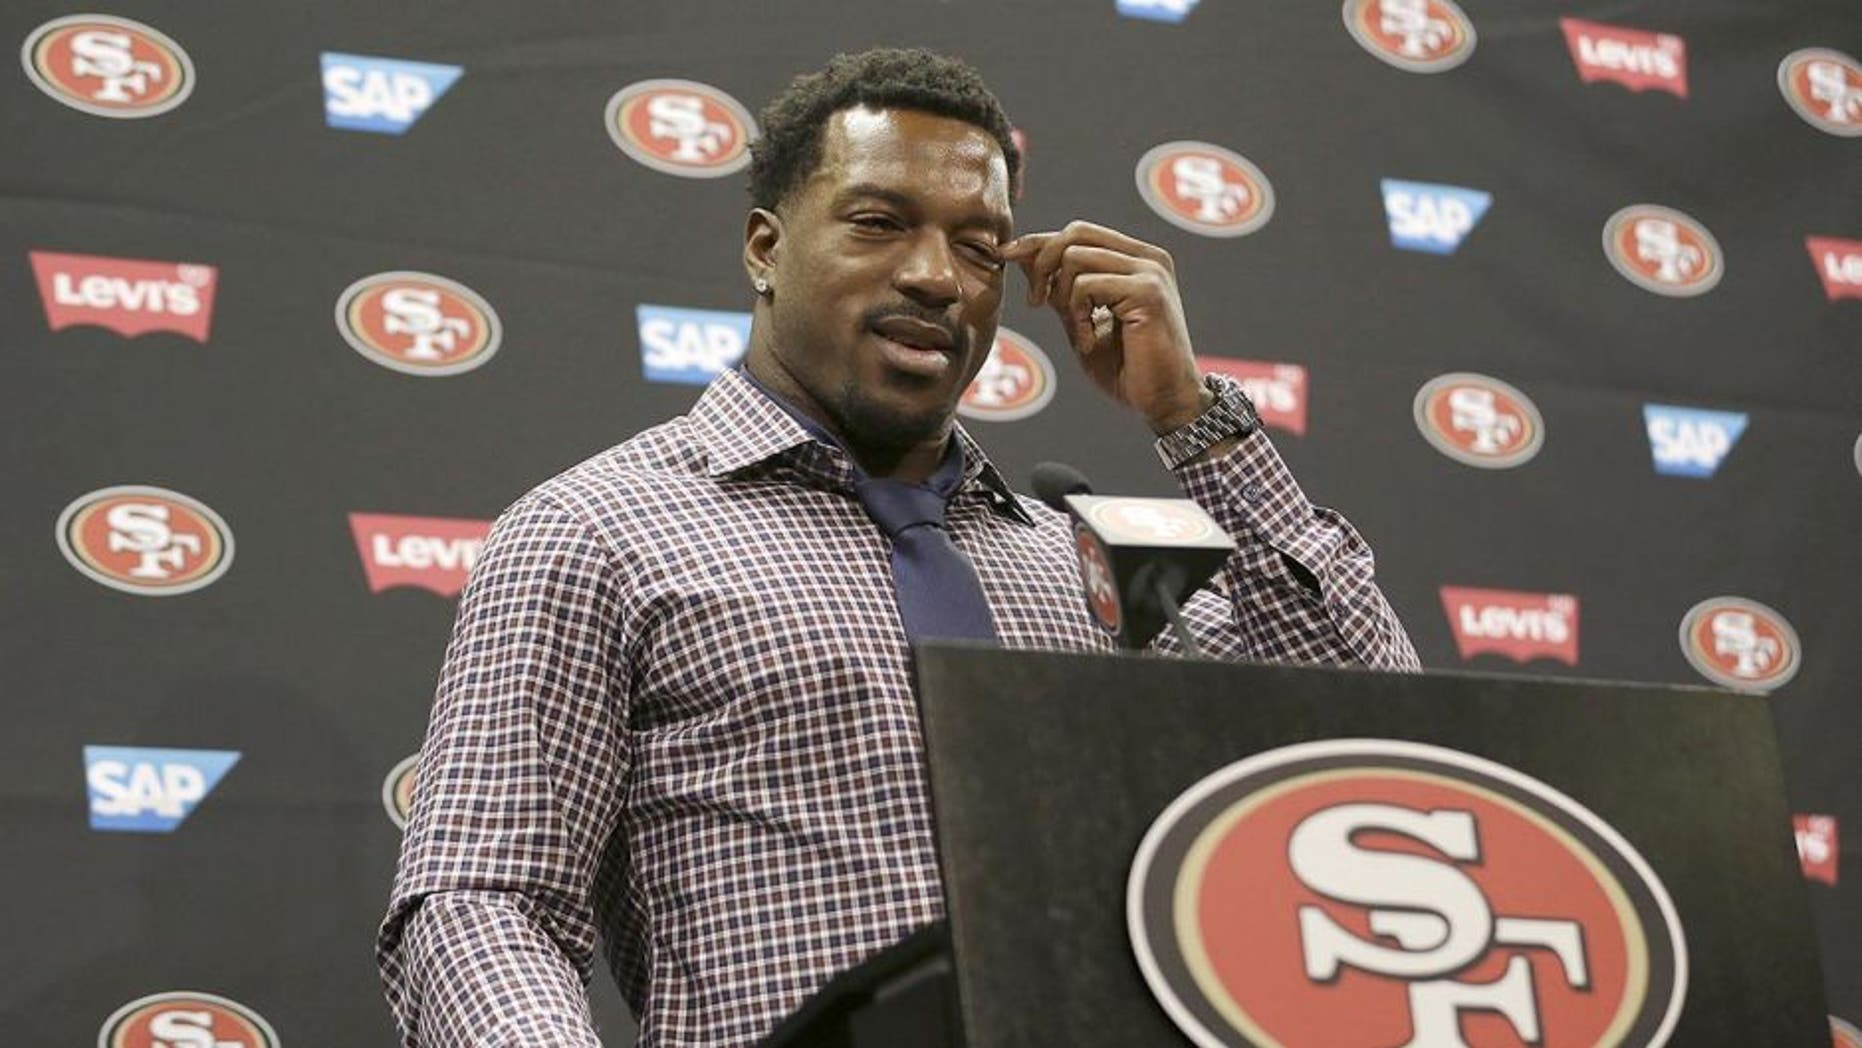 San Francisco 49ers linebacker Patrick Willis wipes his eye as he speaks at a news conference at the team's NFL football facility in Santa Clara, Tuesday, March 10, 2015. Willis, a seven-time Pro Bowler, will retire after his 2014 season was cut short by a toe injury that required surgery. (AP Photo/Jeff Chiu)